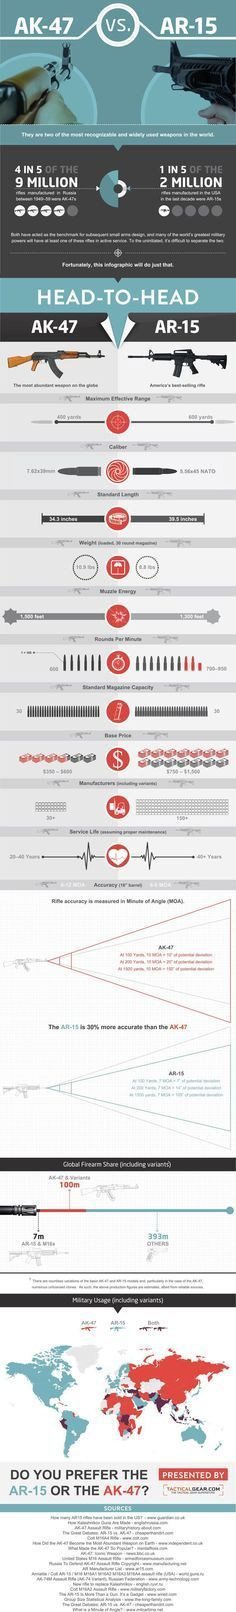 """AK-47 vs. AR-15 Infographic cool custom body armor gear like bulletproof backpacks from Made in USA <a href=""""http://bullet-proof-vest-shop.com"""" rel=""""nofollow"""" target=""""_blank"""">bullet-proof-vest...</a> http://www.facebook.com/yetichaos"""